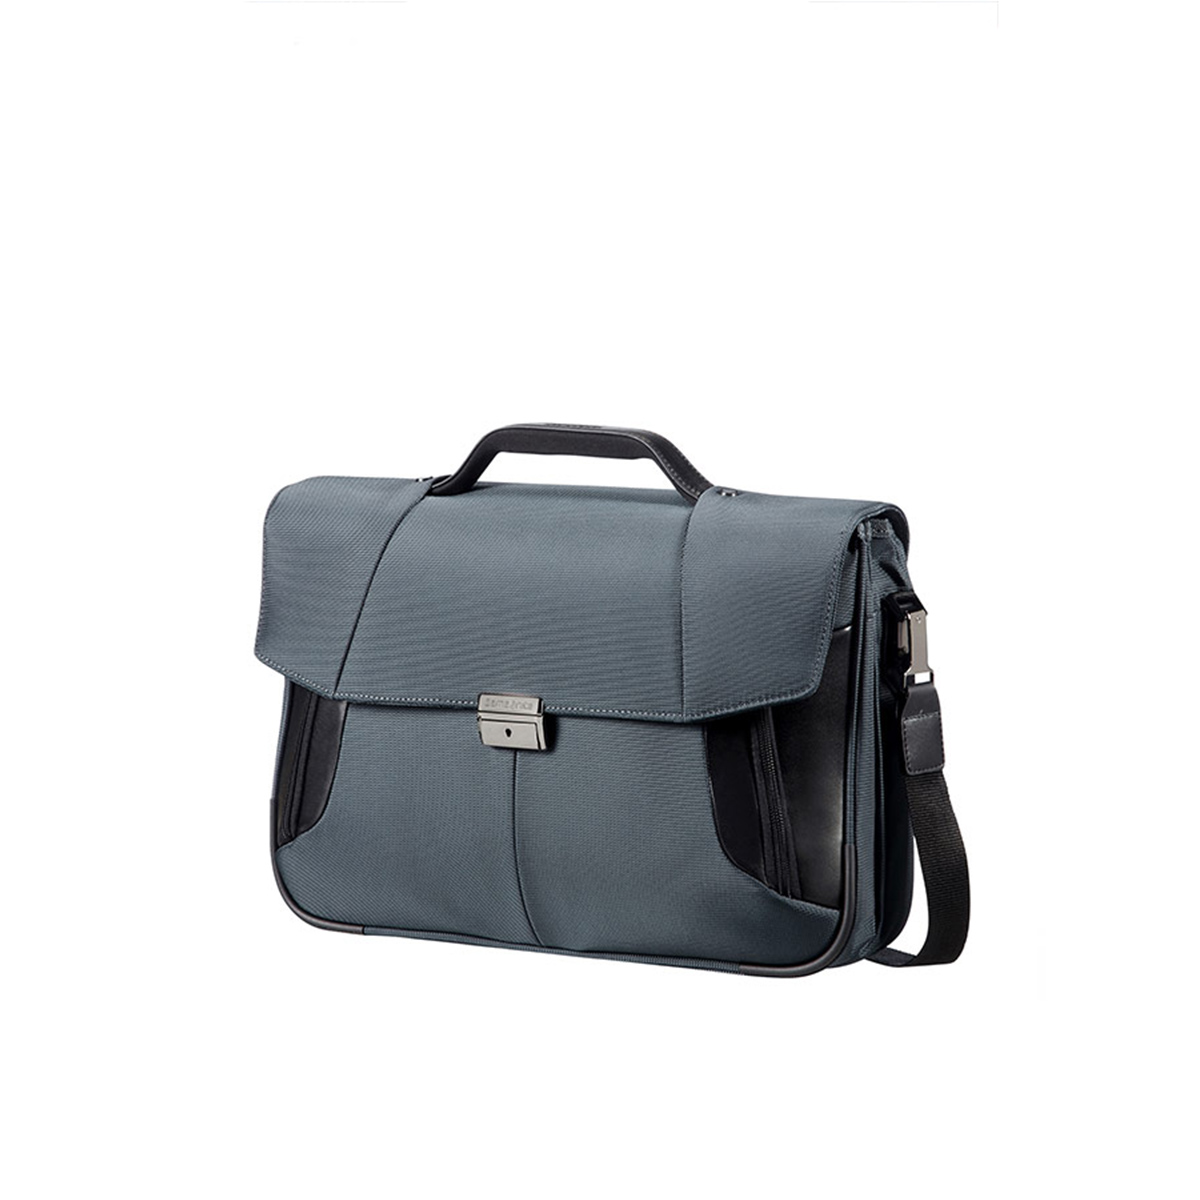 BRIEFCASE 2 GUSSETS 15.6XBR